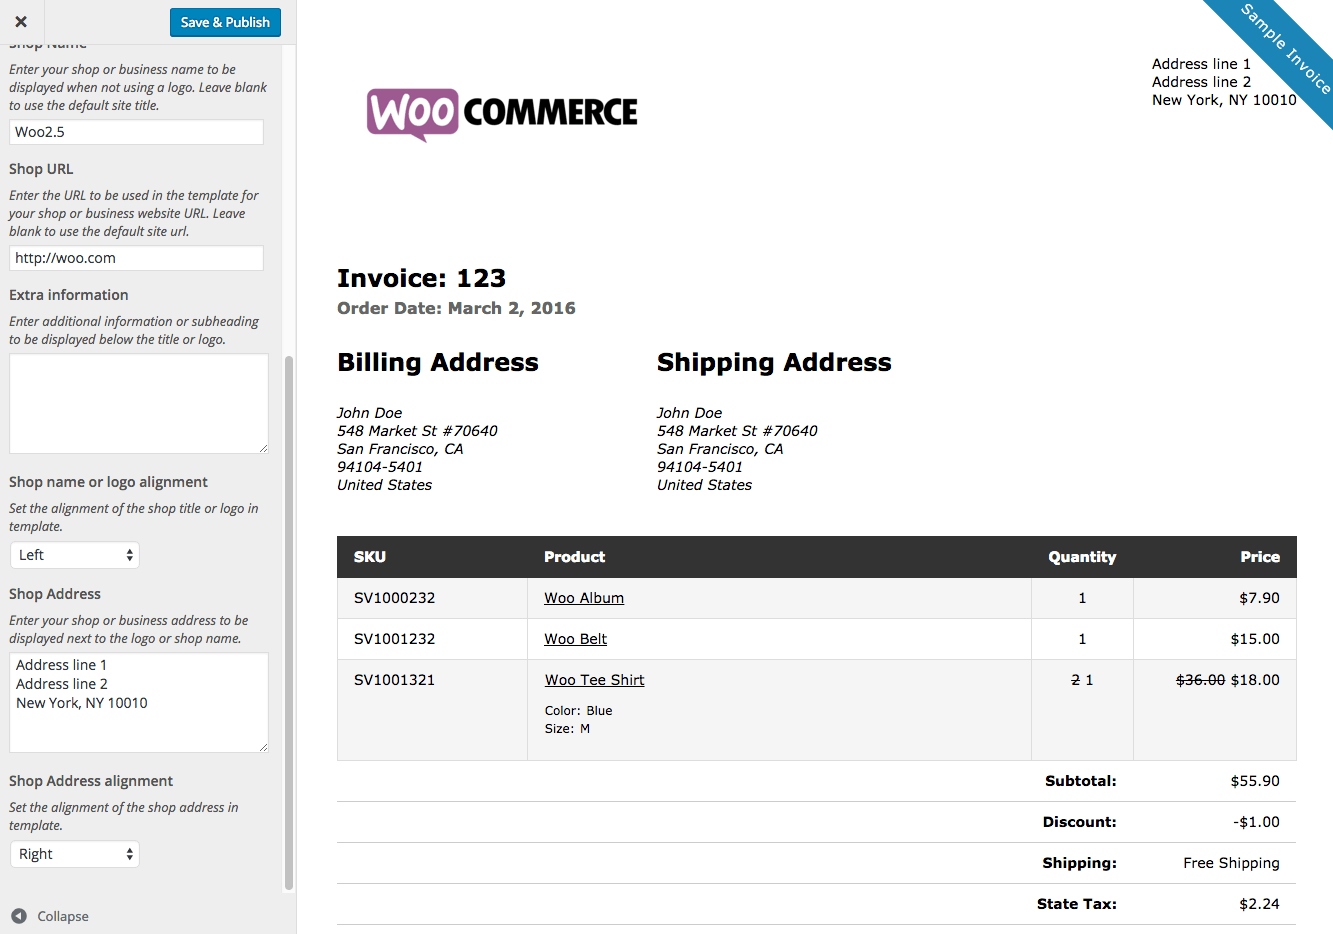 Massenargcus  Outstanding Print Invoices Amp Packing Lists  Woocommerce With Gorgeous Woocommerce Print Invoices  Packing Lists Customizer With Amazing Payment Invoice Template Word Also Freight Invoice Sample In Addition Pay Invoices Online And Trucking Invoice Software As Well As Flooring Invoice Template Additionally How To Write An Invoice For Services From Woocommercecom With Massenargcus  Gorgeous Print Invoices Amp Packing Lists  Woocommerce With Amazing Woocommerce Print Invoices  Packing Lists Customizer And Outstanding Payment Invoice Template Word Also Freight Invoice Sample In Addition Pay Invoices Online From Woocommercecom